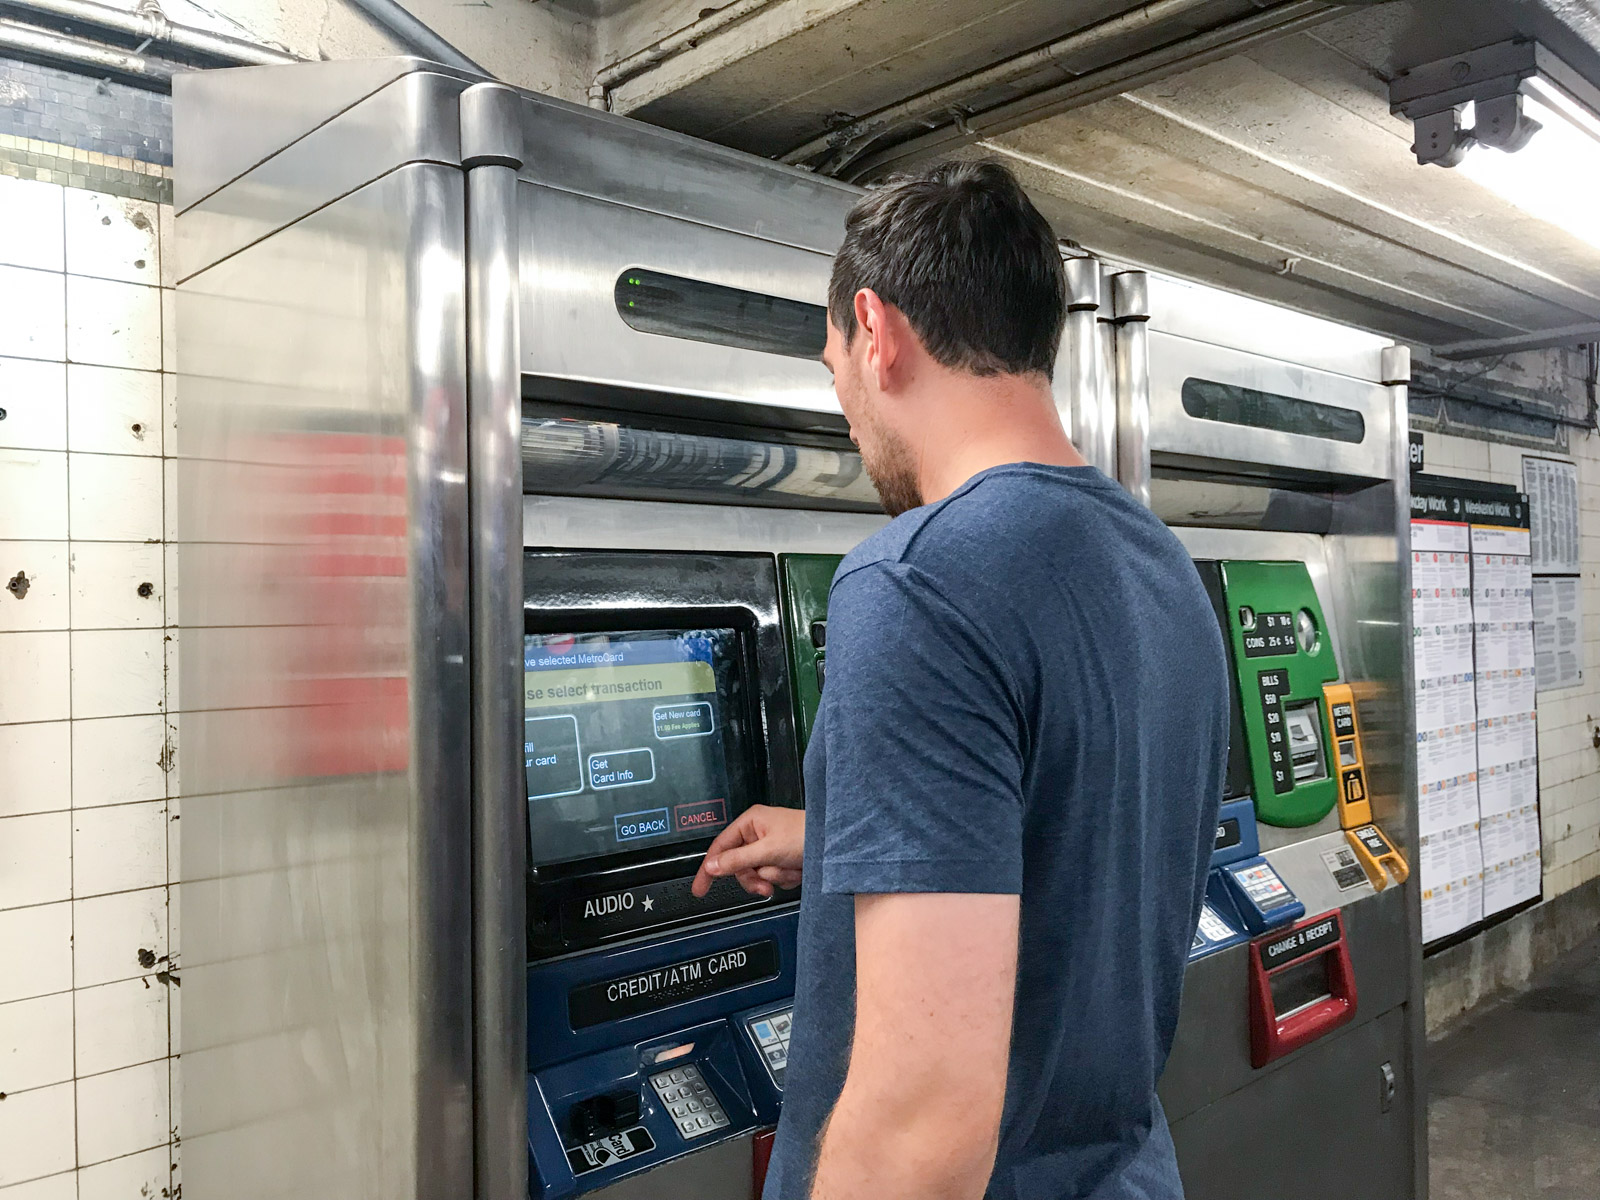 A man using a ticket machine to purchase subway tickets